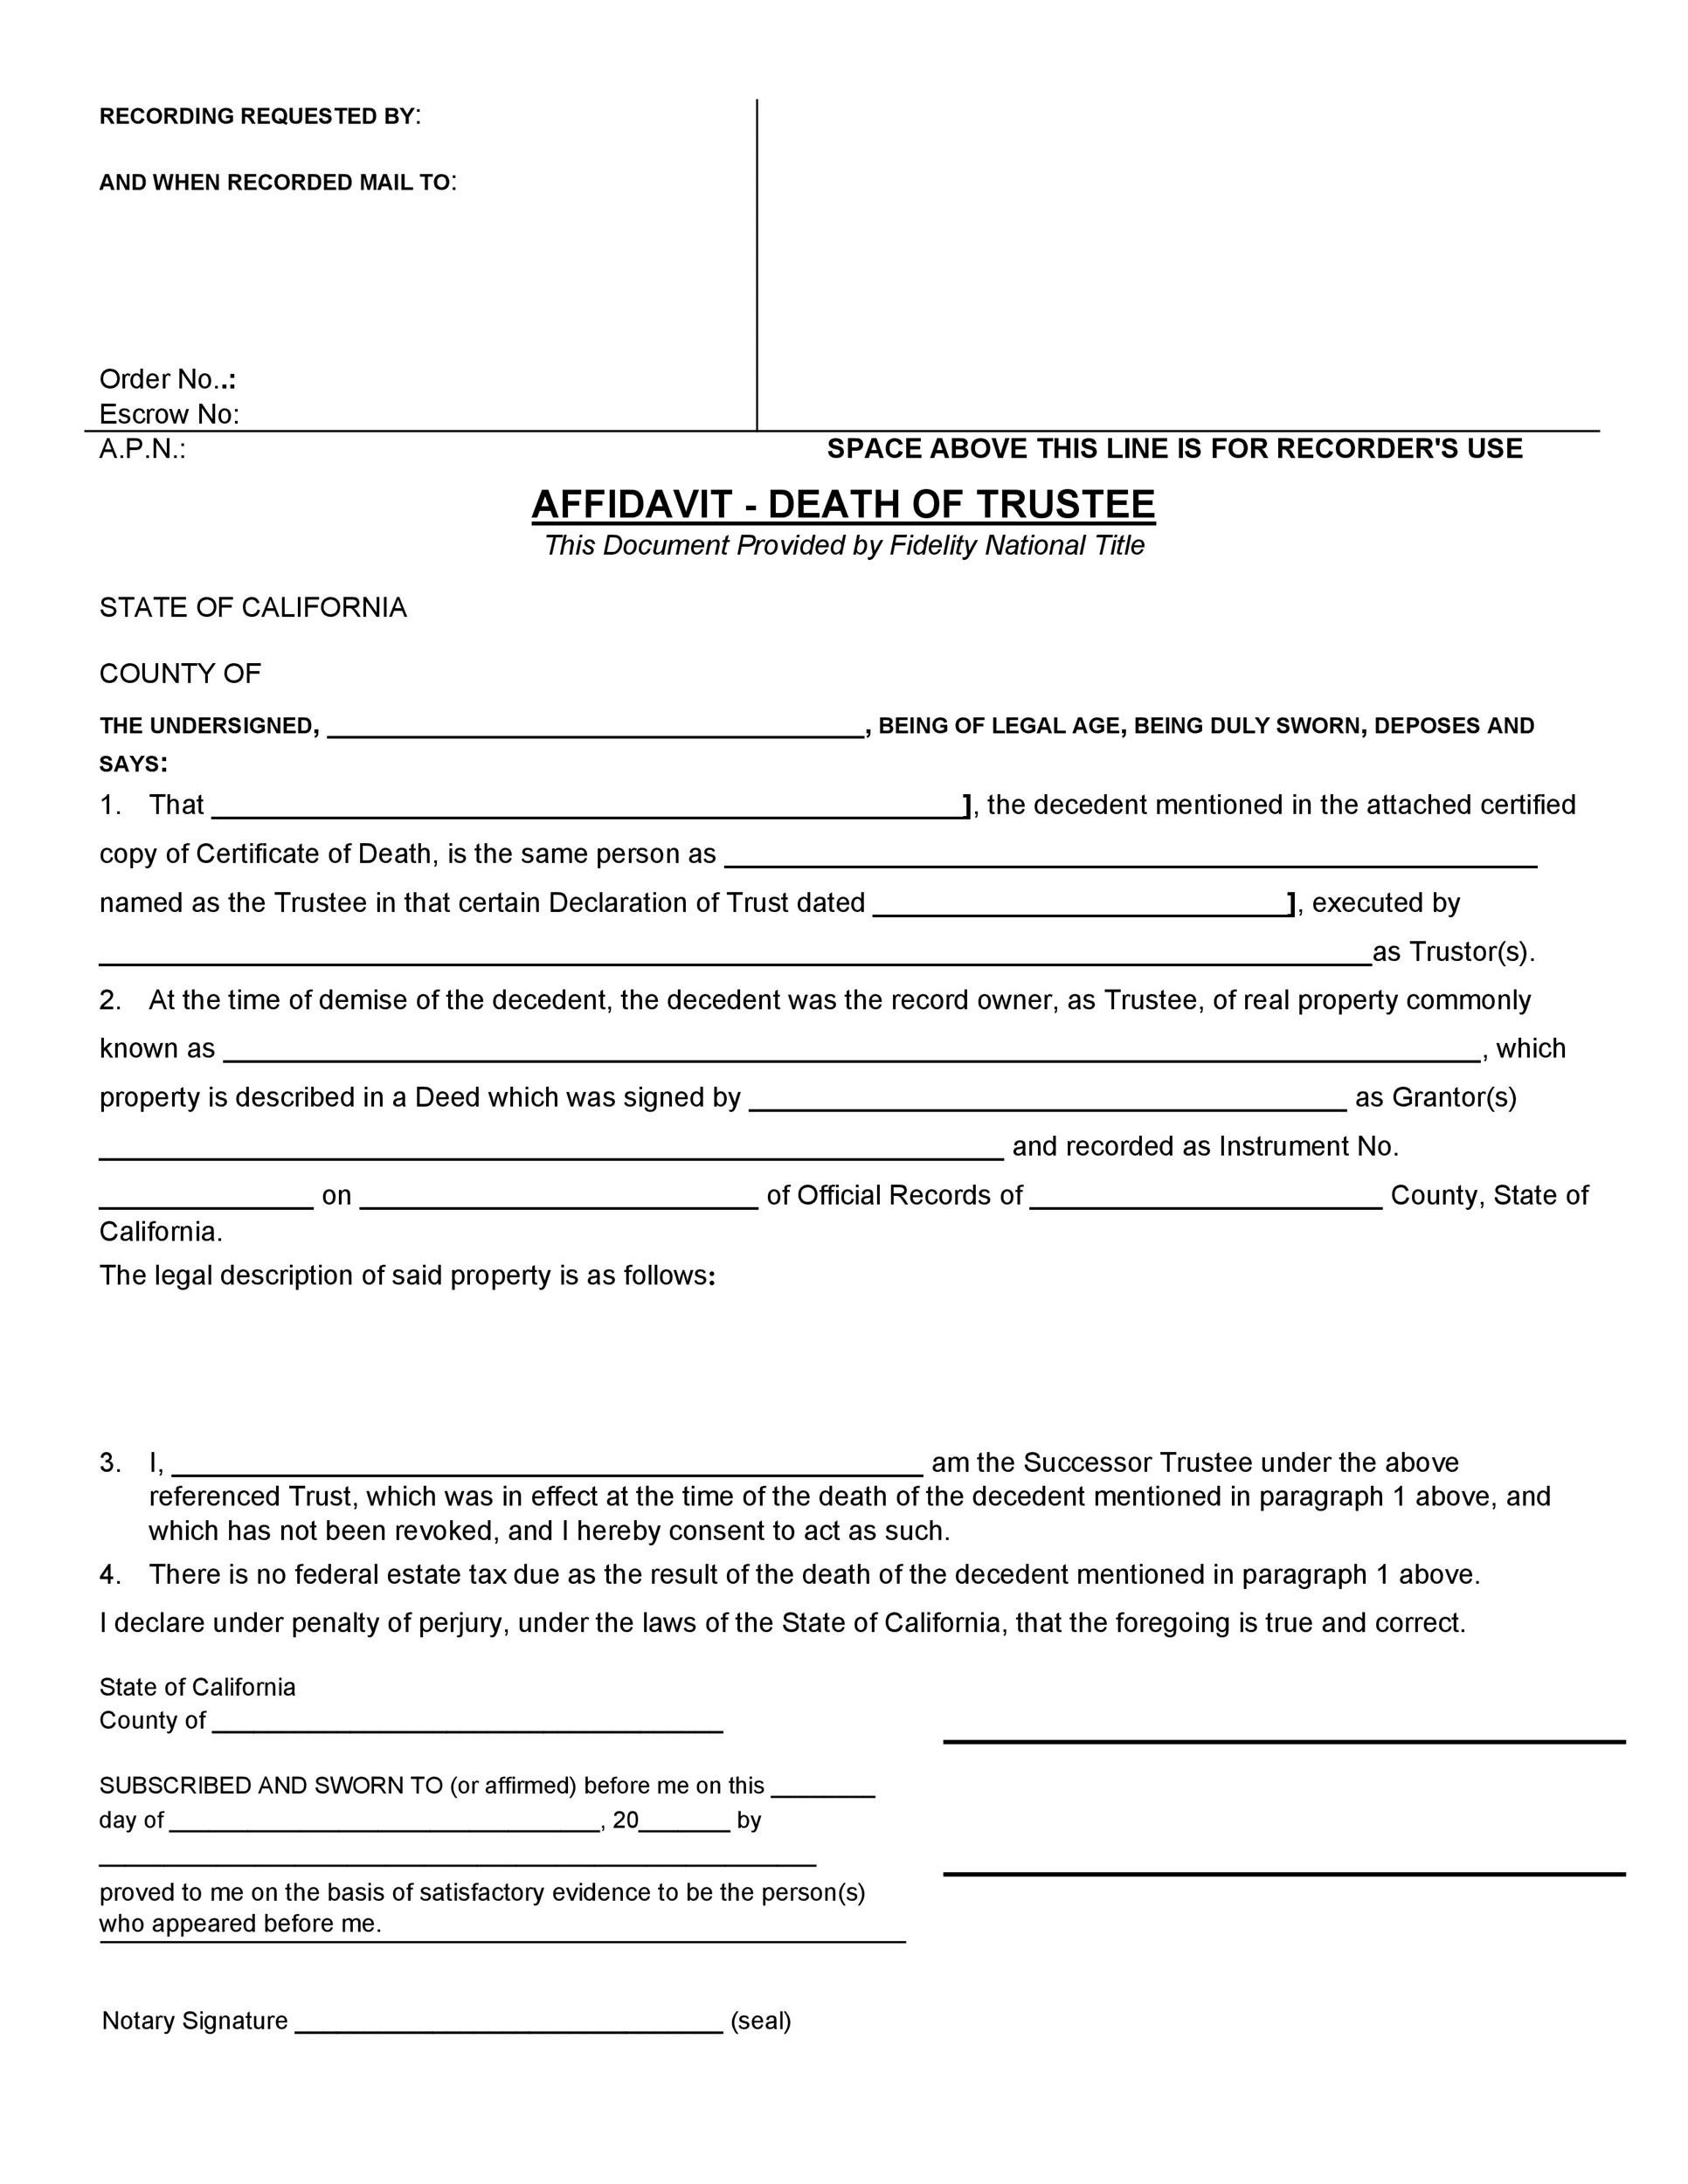 Free affidavit of death 18